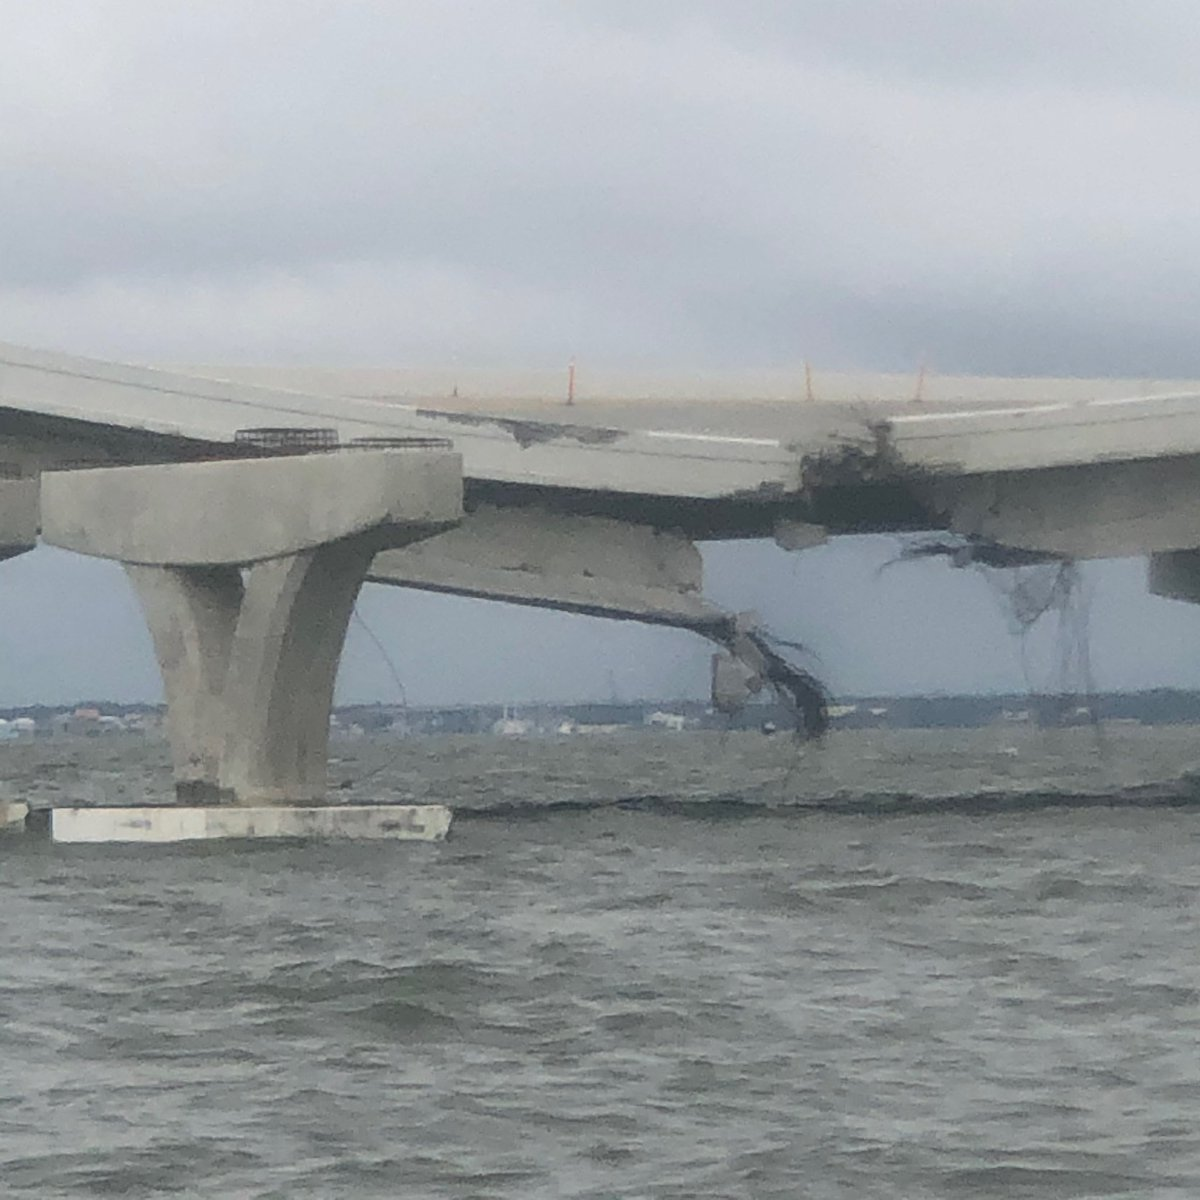 PENSACOLA BAY BRIDGE: Damage to the newly built span of the 3 Mile Bridge that connects Pensacola and Gulf Breeze.  8 construction barges became loose during #Sally, with 2 of them hitting the bridge. This is a $400 million infrastructure project.  📸 Photos from Kathryn Hendrix. https://t.co/BOioRWPHgt